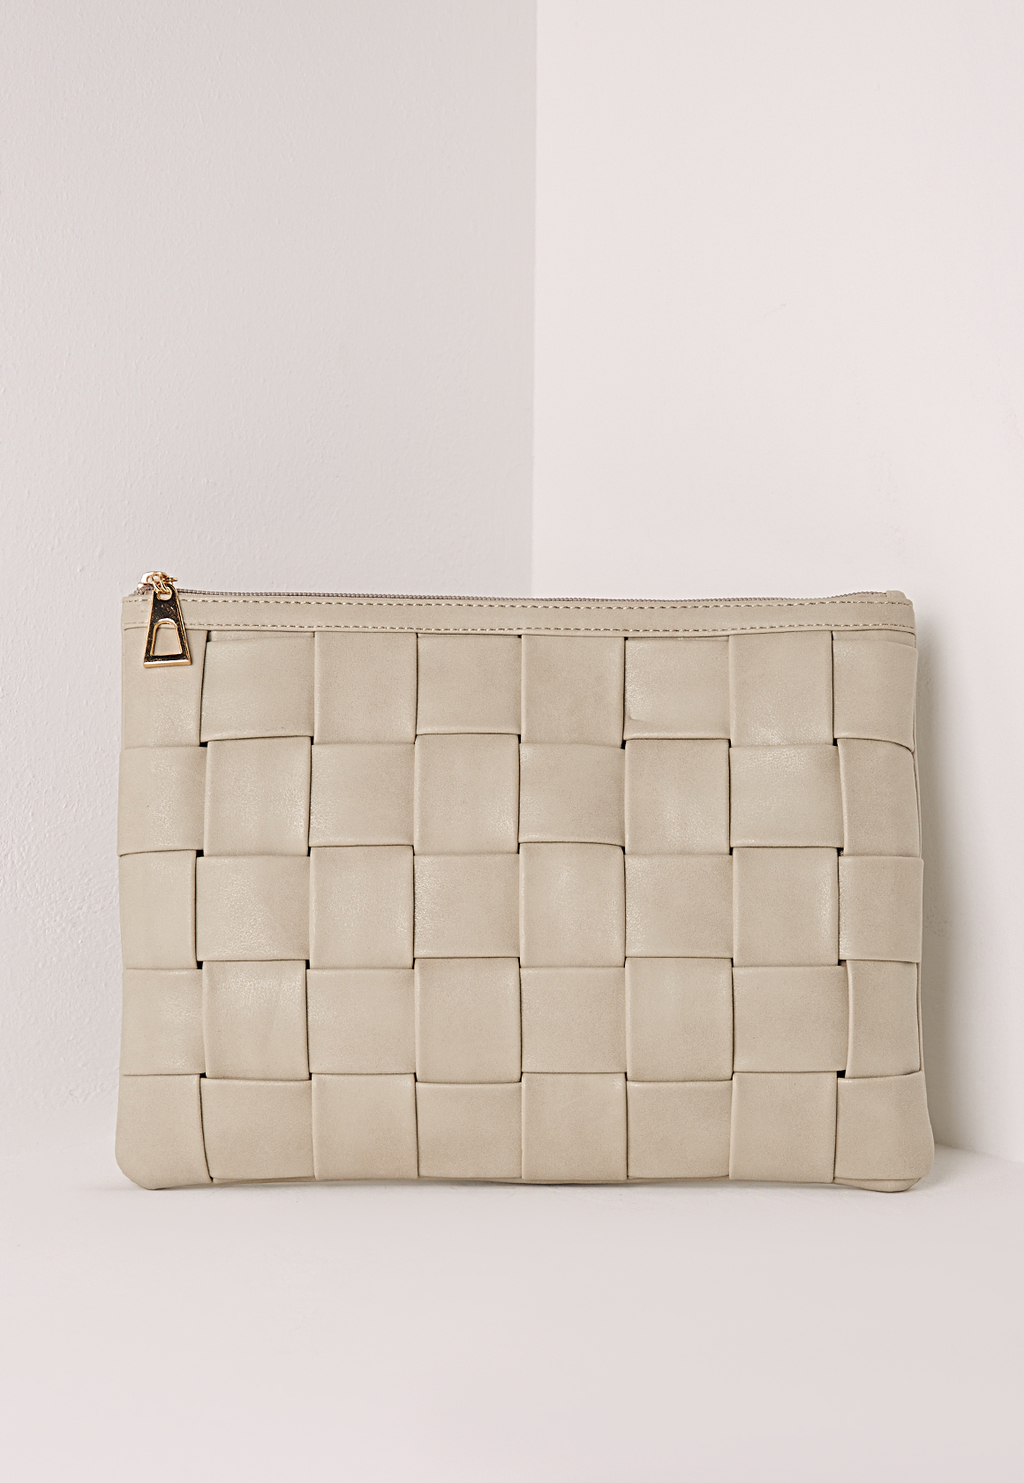 Oversize Twil Weave Suedette Clutch Beige, Beige - predominant colour: stone; occasions: evening, occasion; type of pattern: standard; style: clutch; length: hand carry; size: small; material: faux leather; pattern: plain; finish: plain; season: s/s 2016